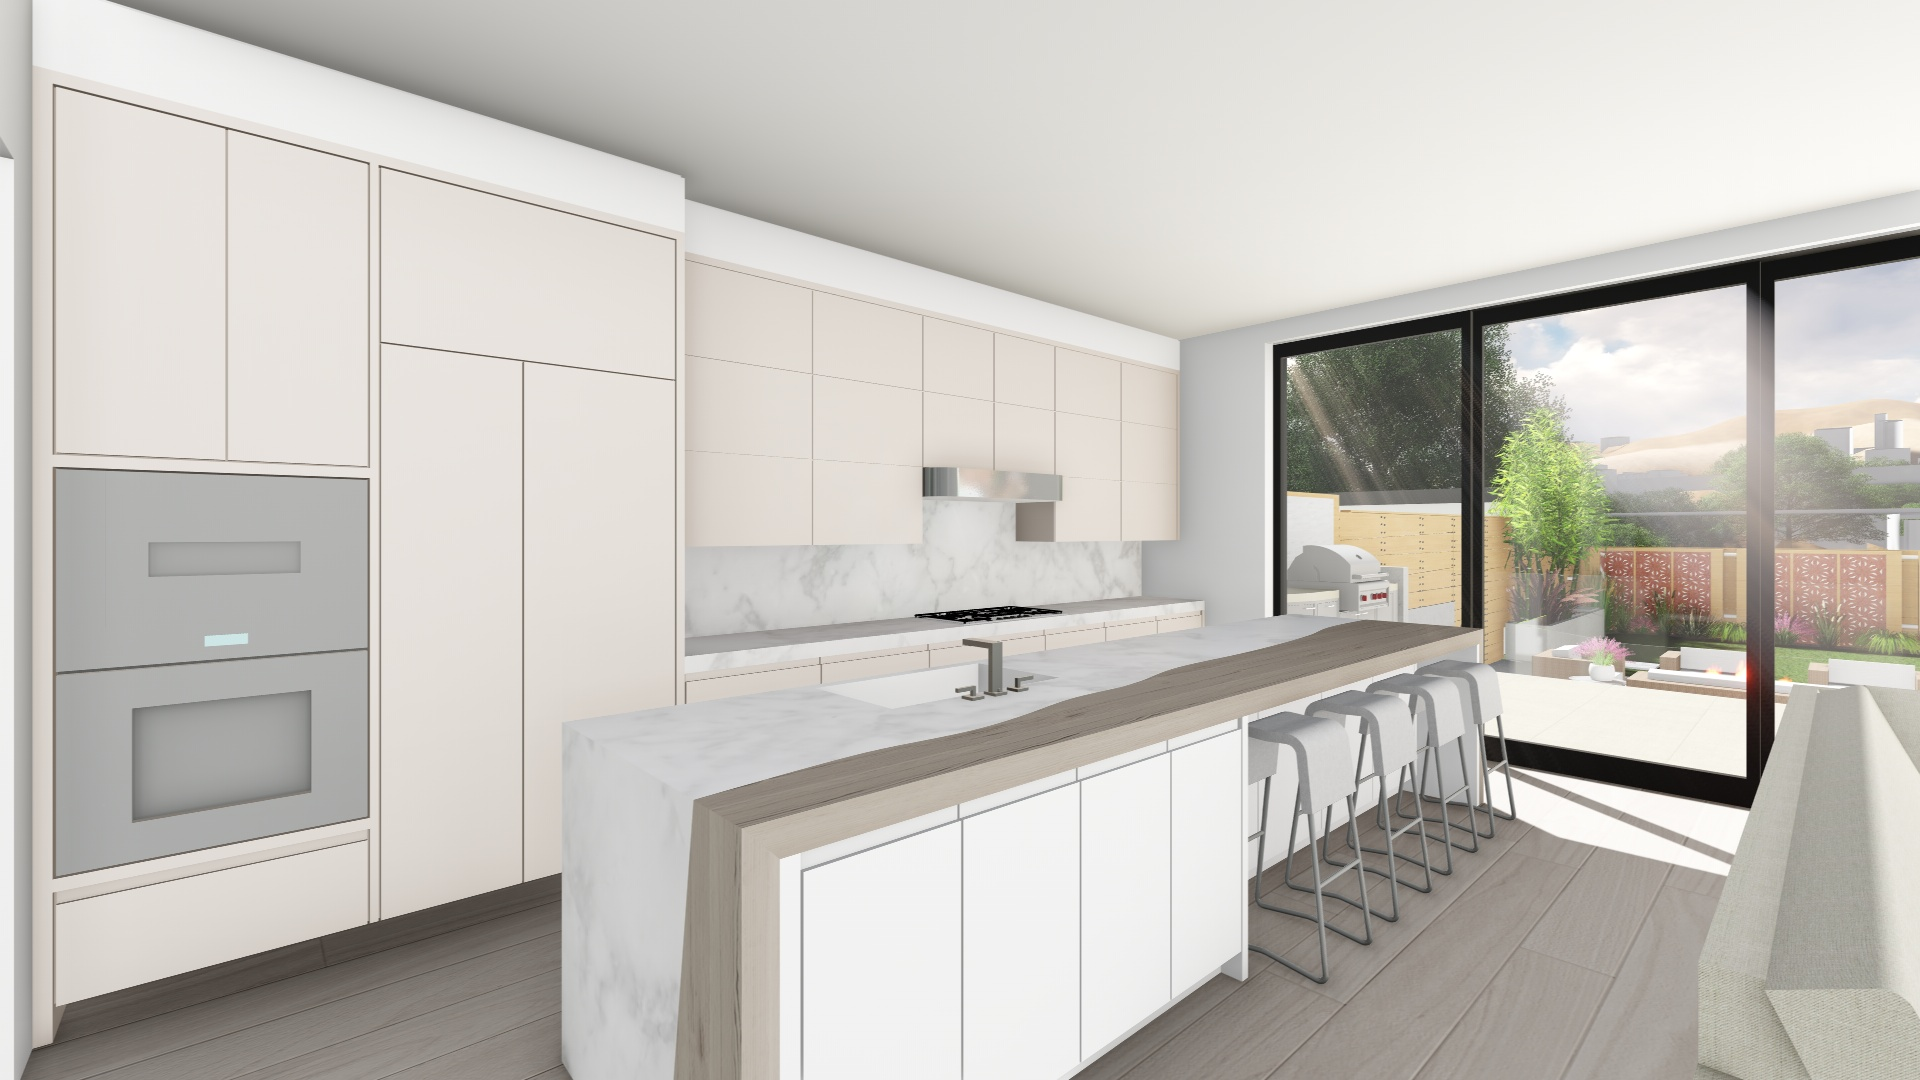 428 Collinwood Street - RENDERS - KITCHEN_1_071217.jpg